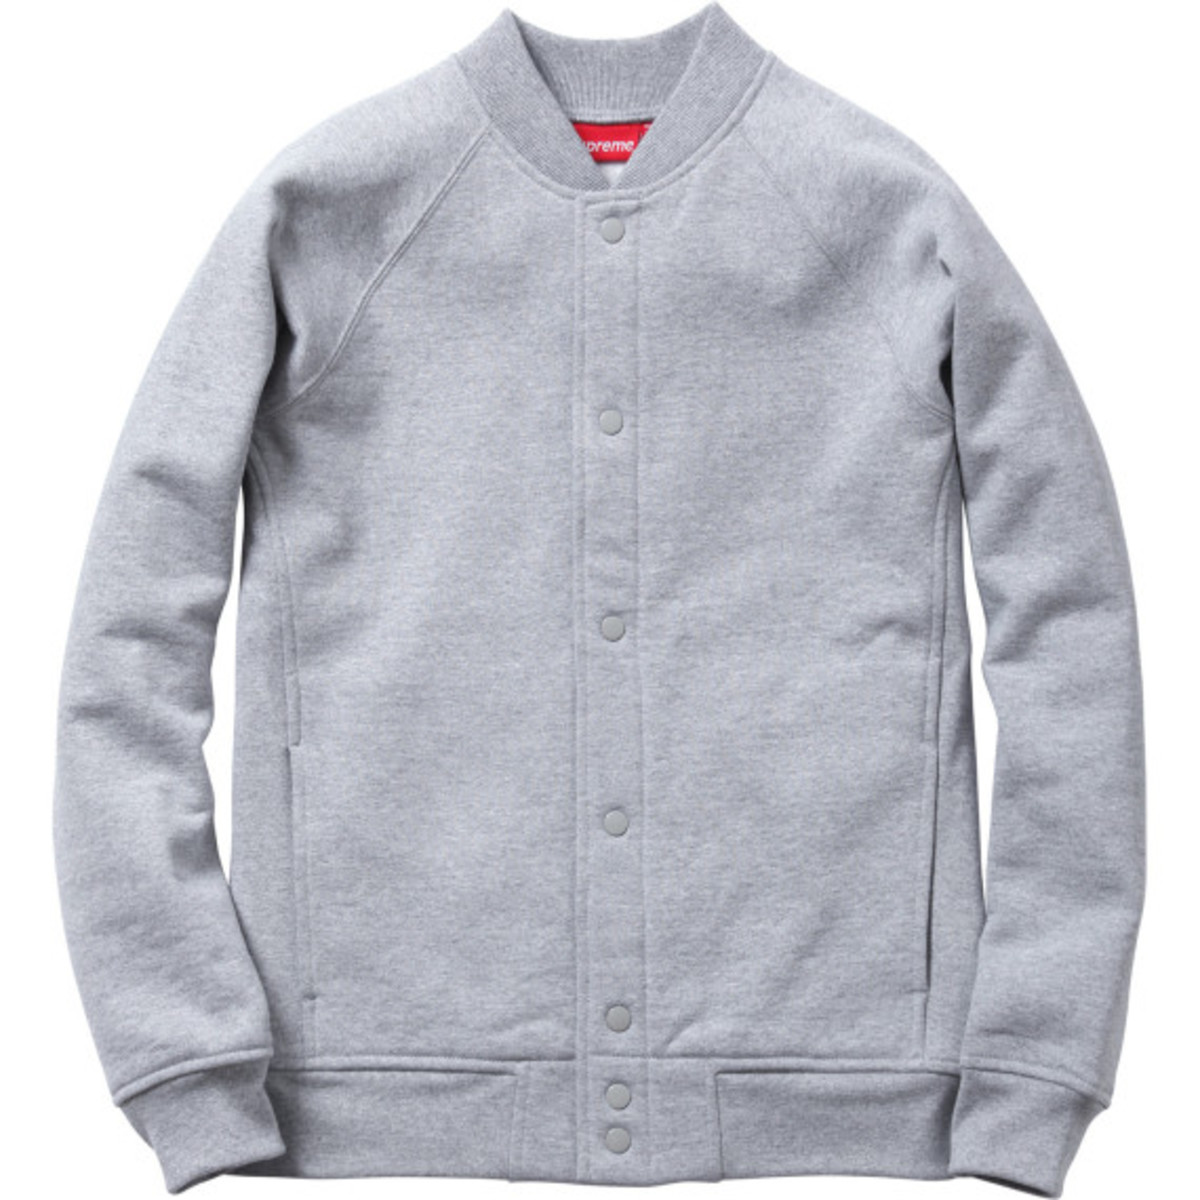 Supreme - Snap Front Arc Logo Sweatshirt | Available Now - 1